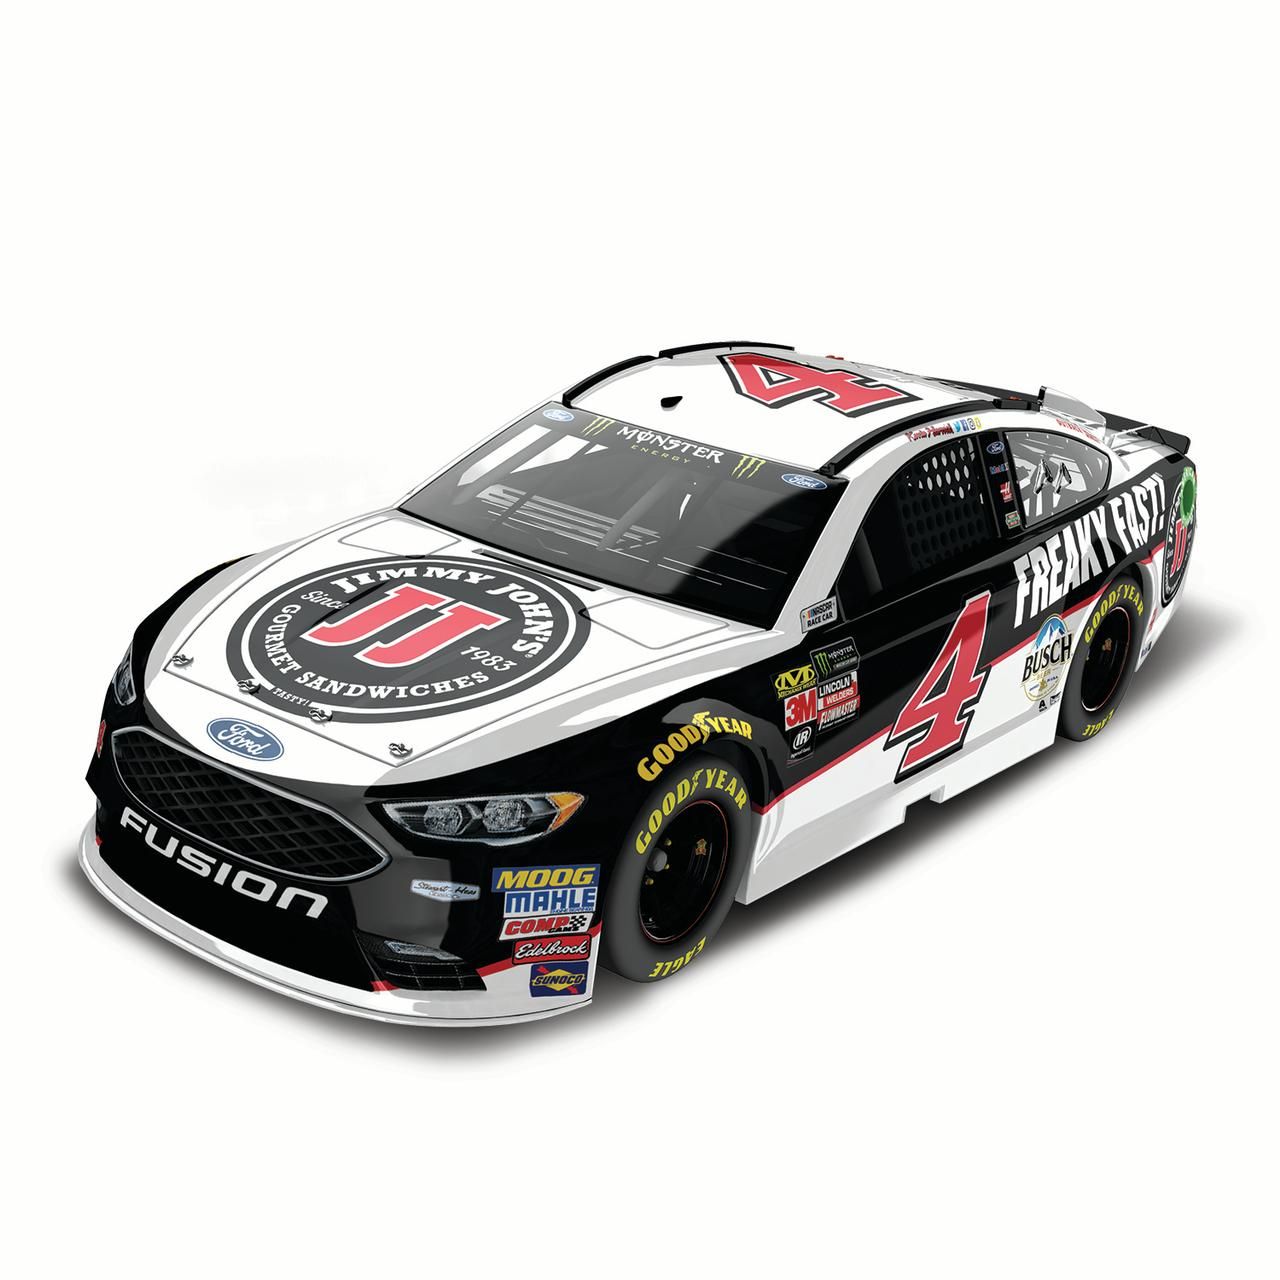 Lionel Racing Kevin Harvick #4 Jimmy John's 2018 Ford Fusion 1:24 Scale HO Die-cast